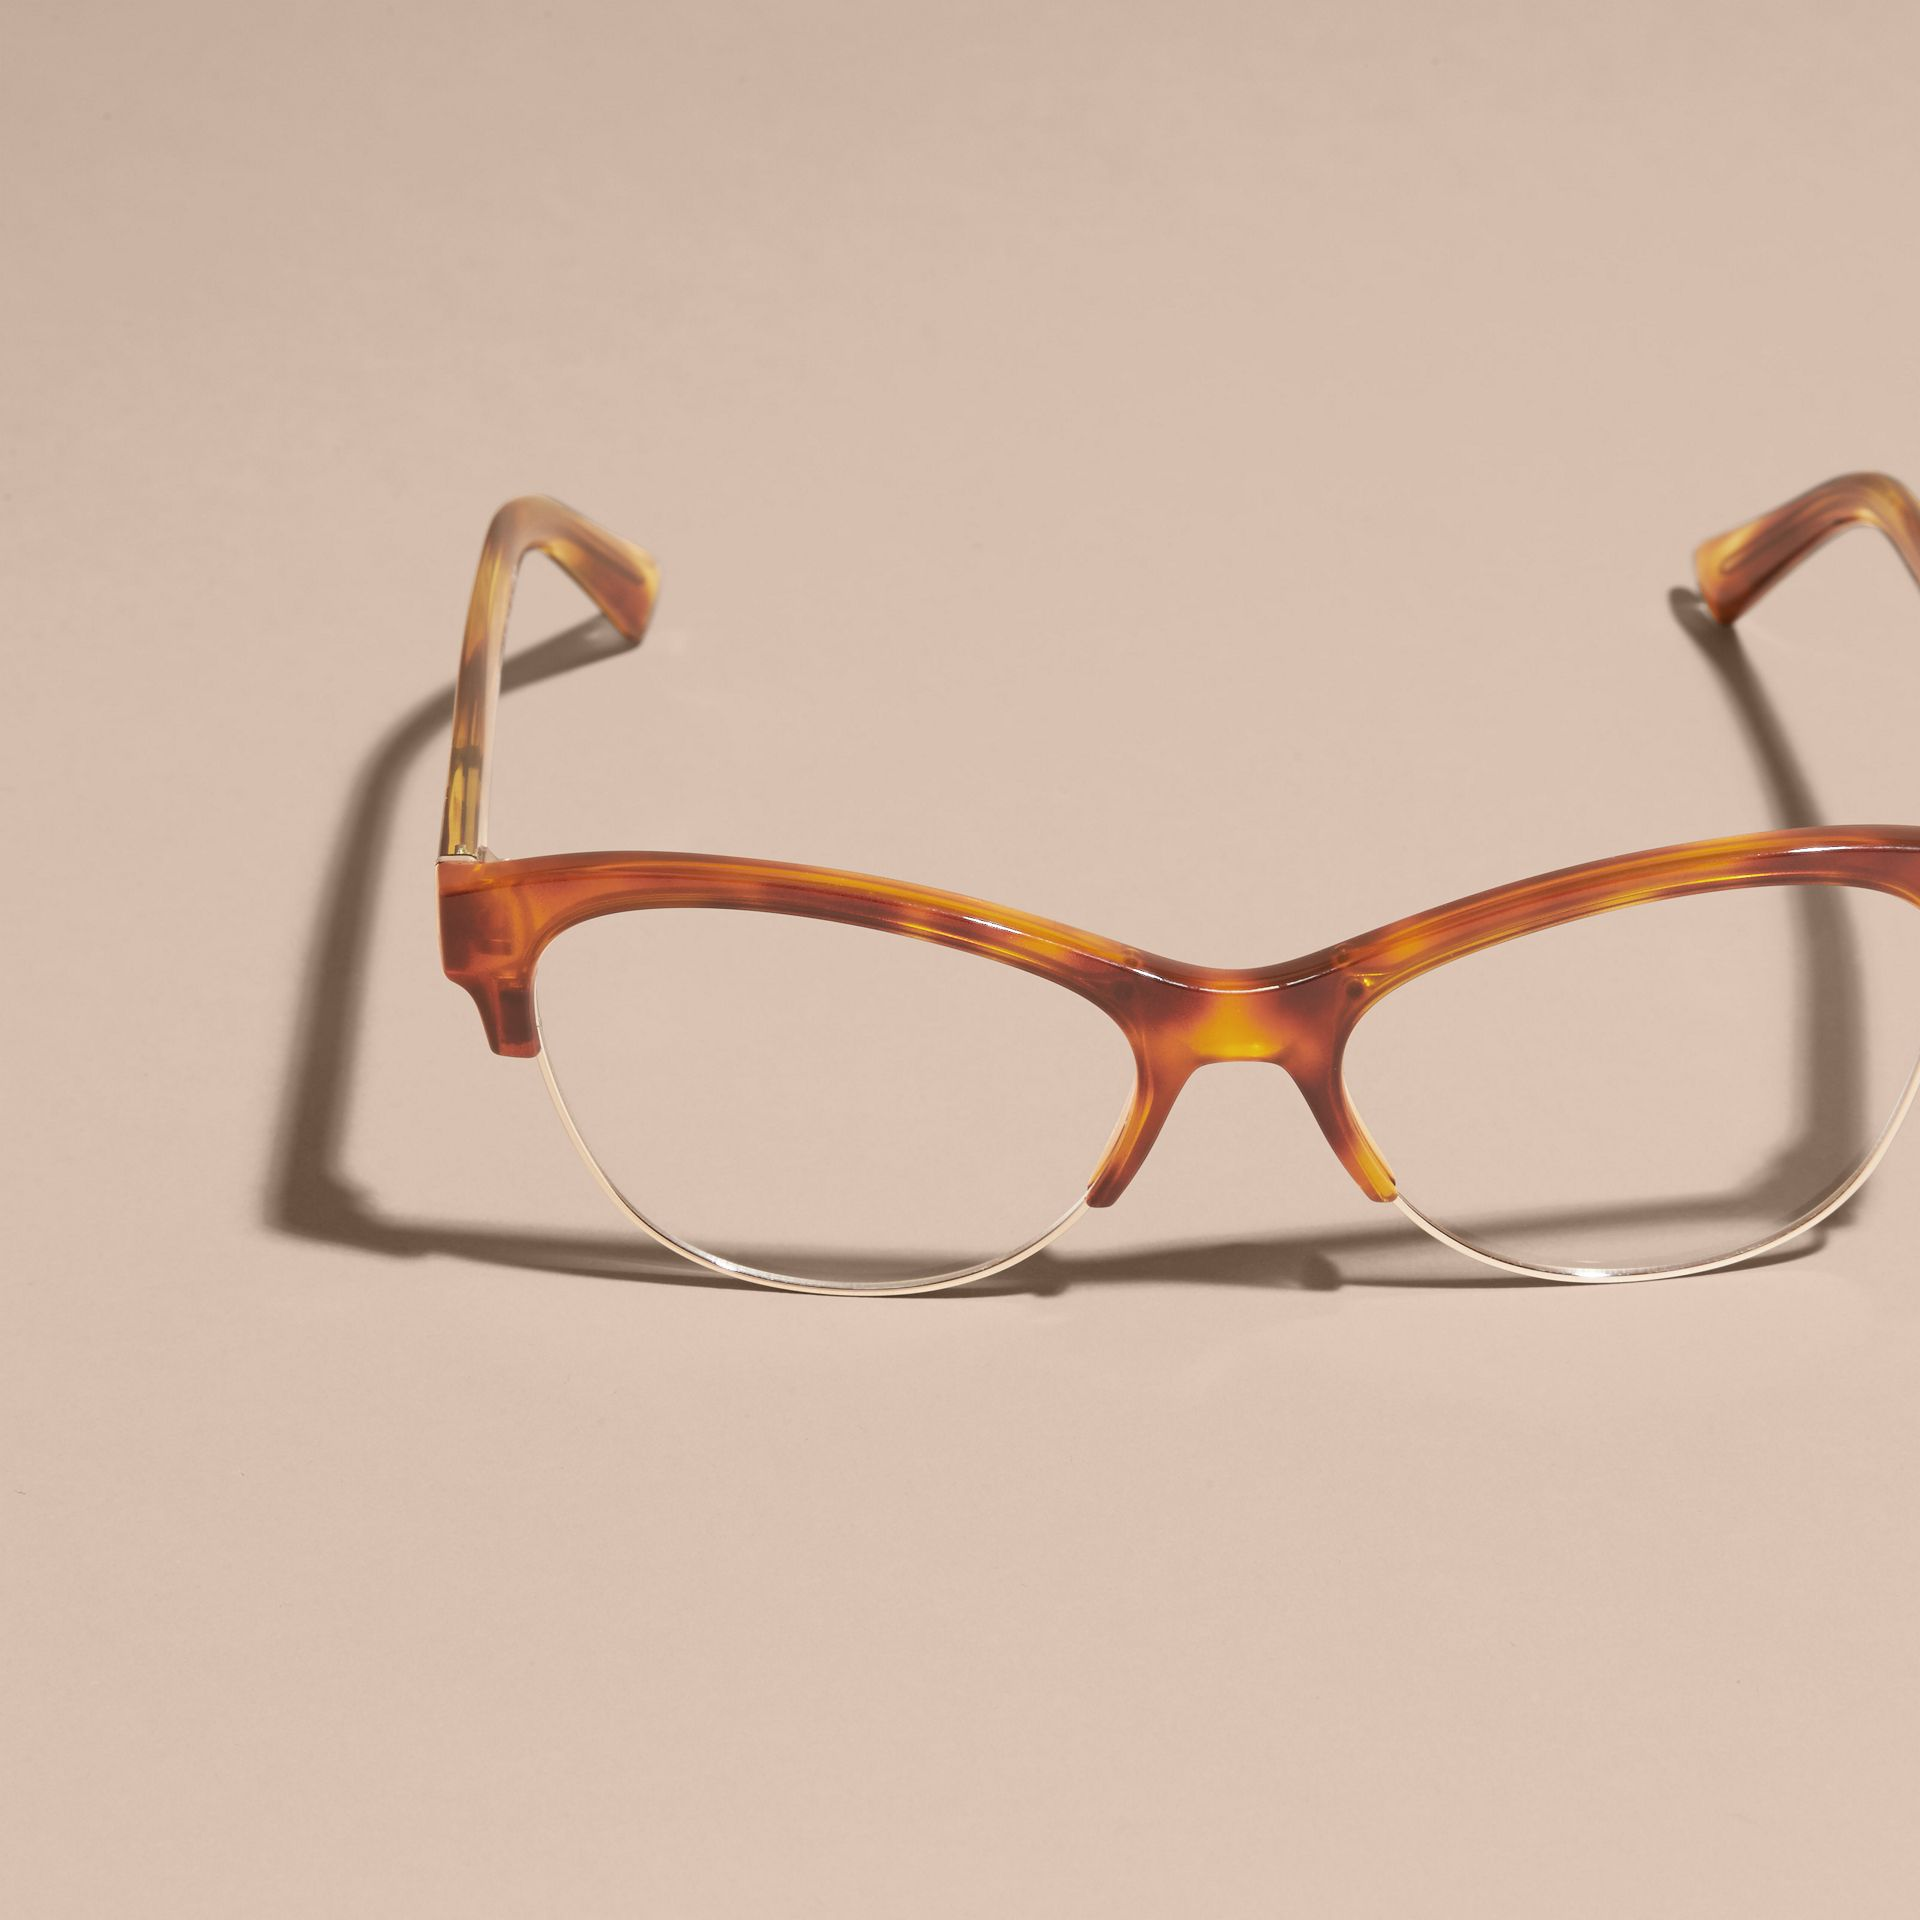 Half-rimmed Cat-eye Optical Frames in Light Russet Brown - gallery image 3